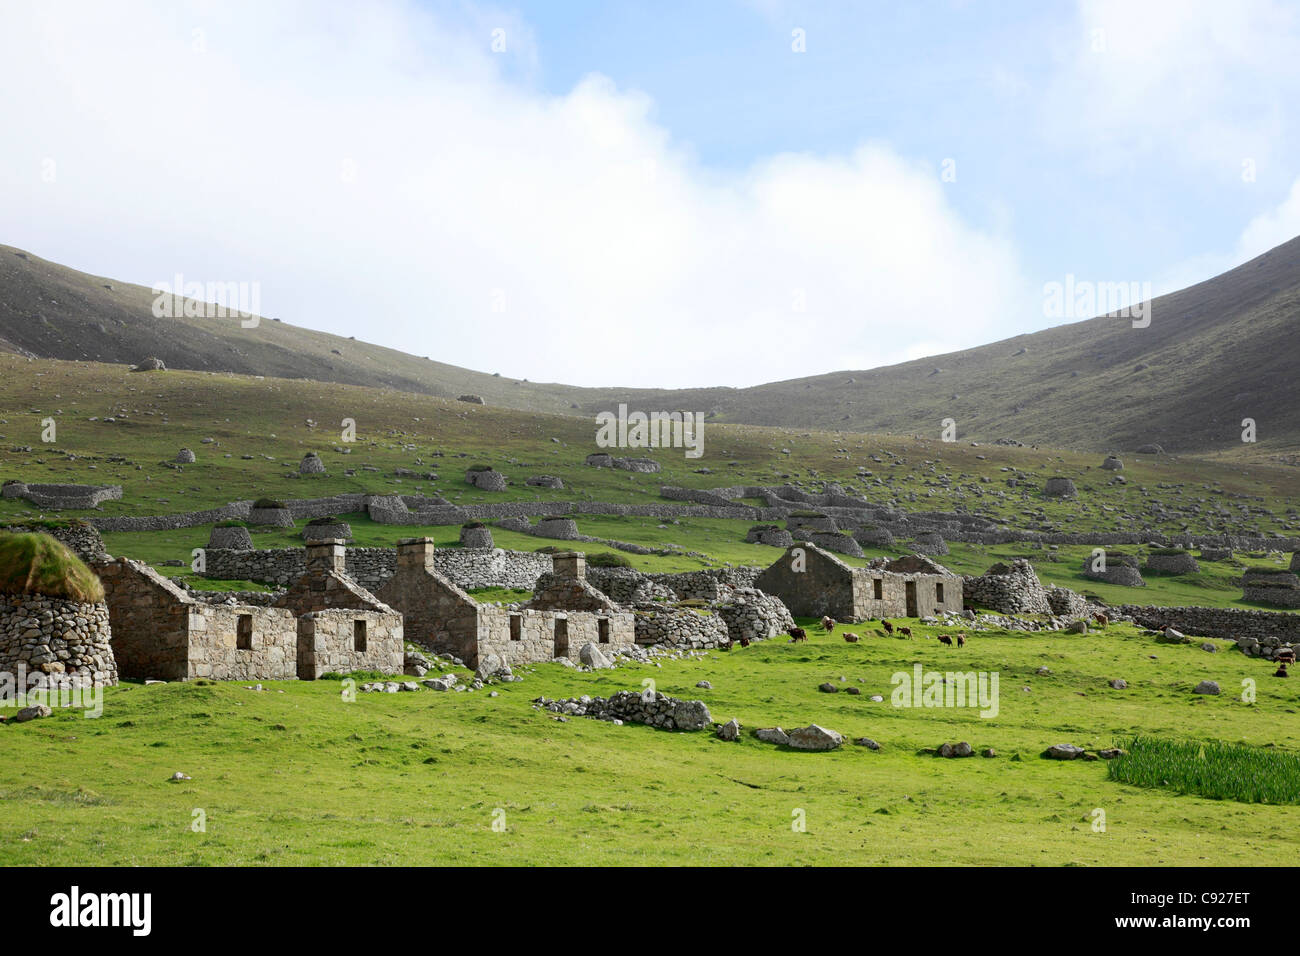 Row of derelict stone houses on the island of St Kilda in the Outer Hebrides, Scotland. - Stock Image